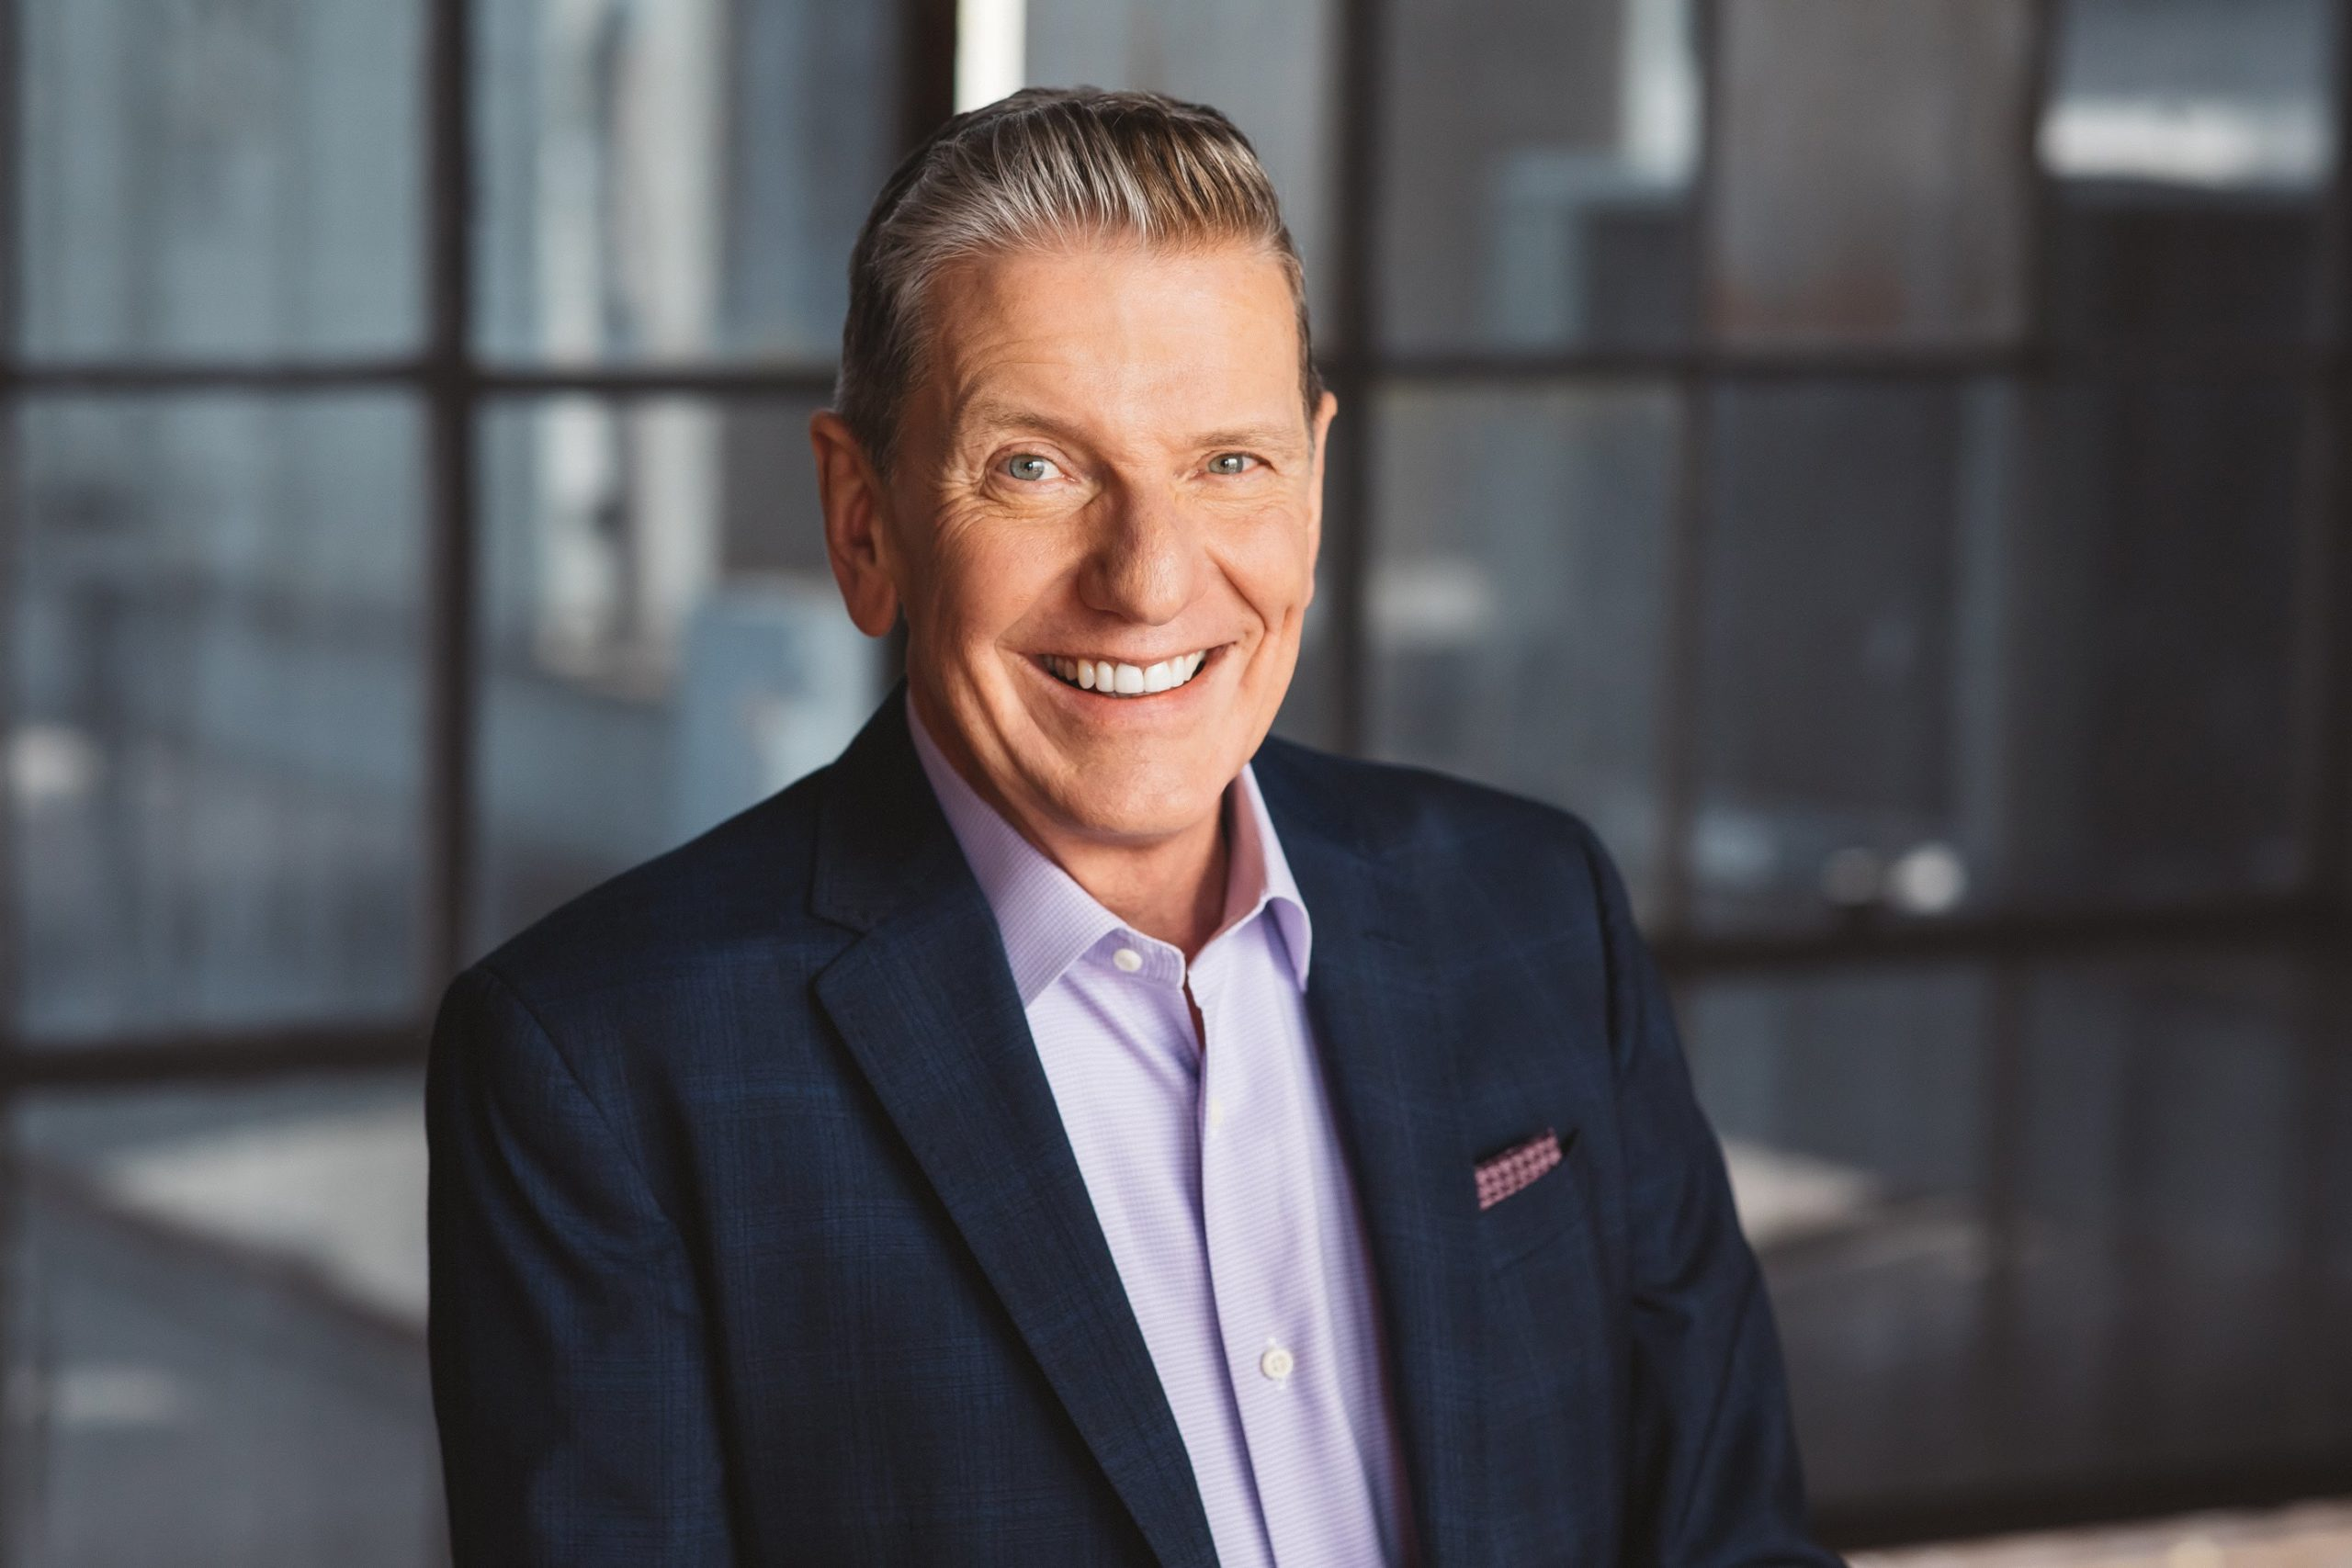 010: Michael Hyatt on Why Most Strategic and Annual Plans Fail (and What to Do About It)